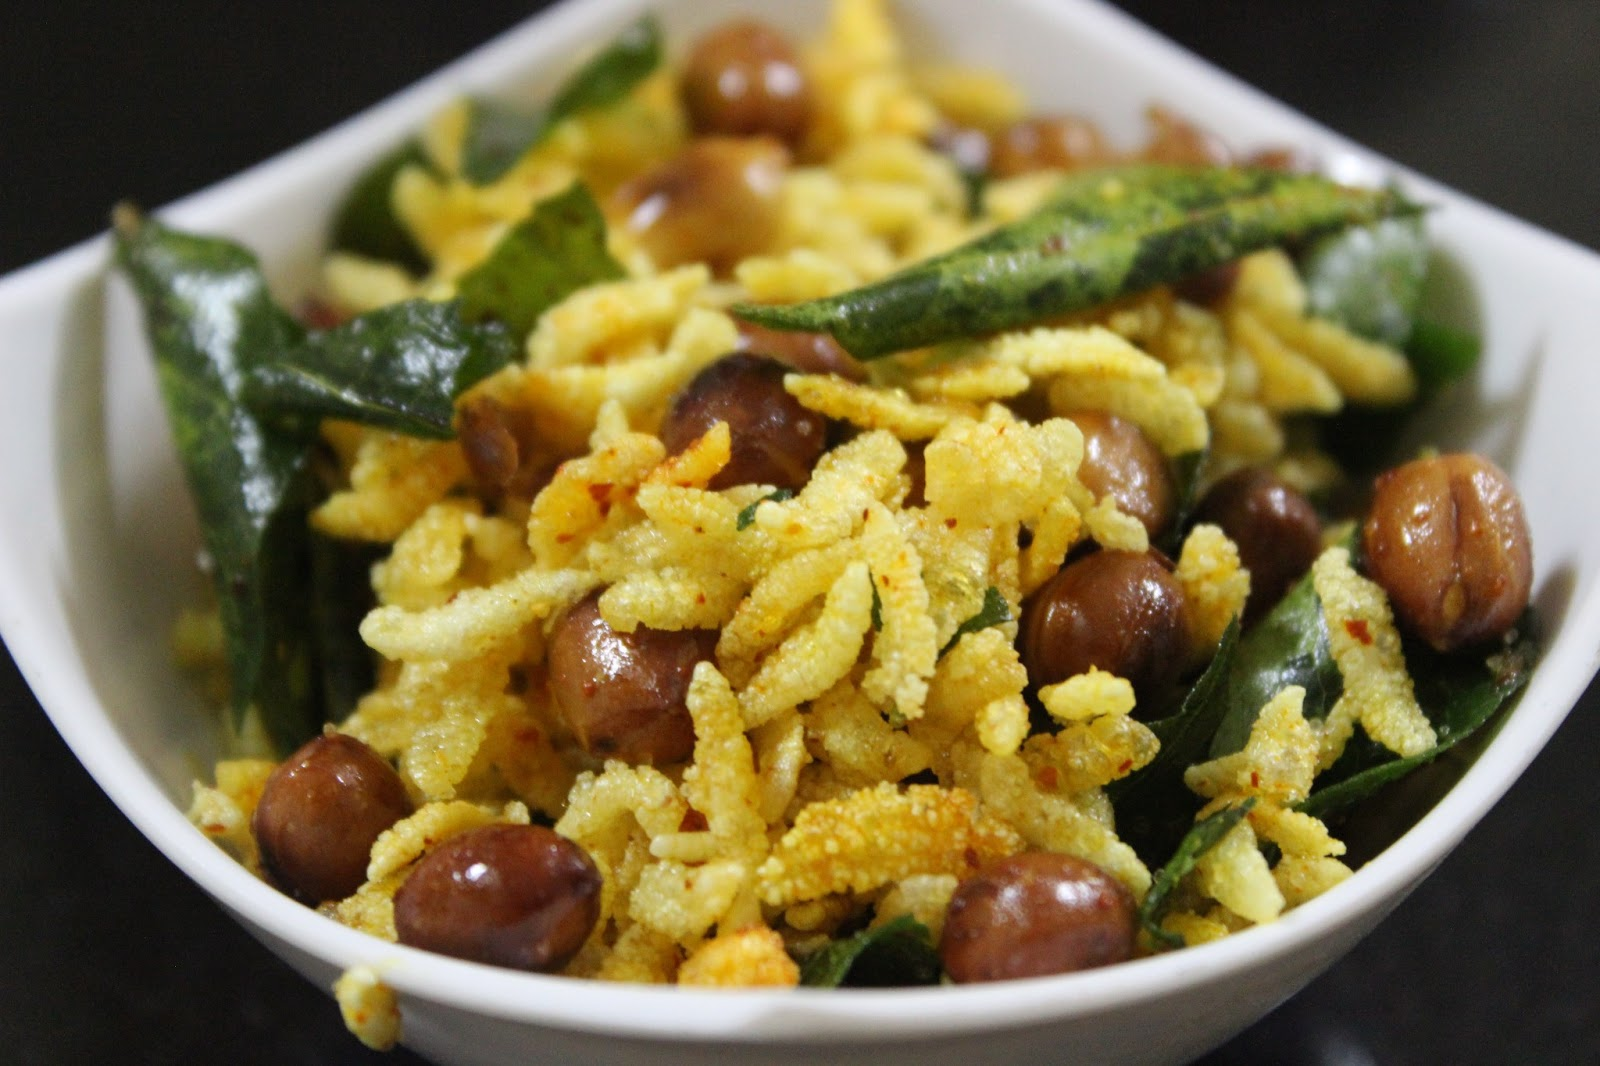 Poha/Flattened rice deep fried and flavoured with spices and peanuts